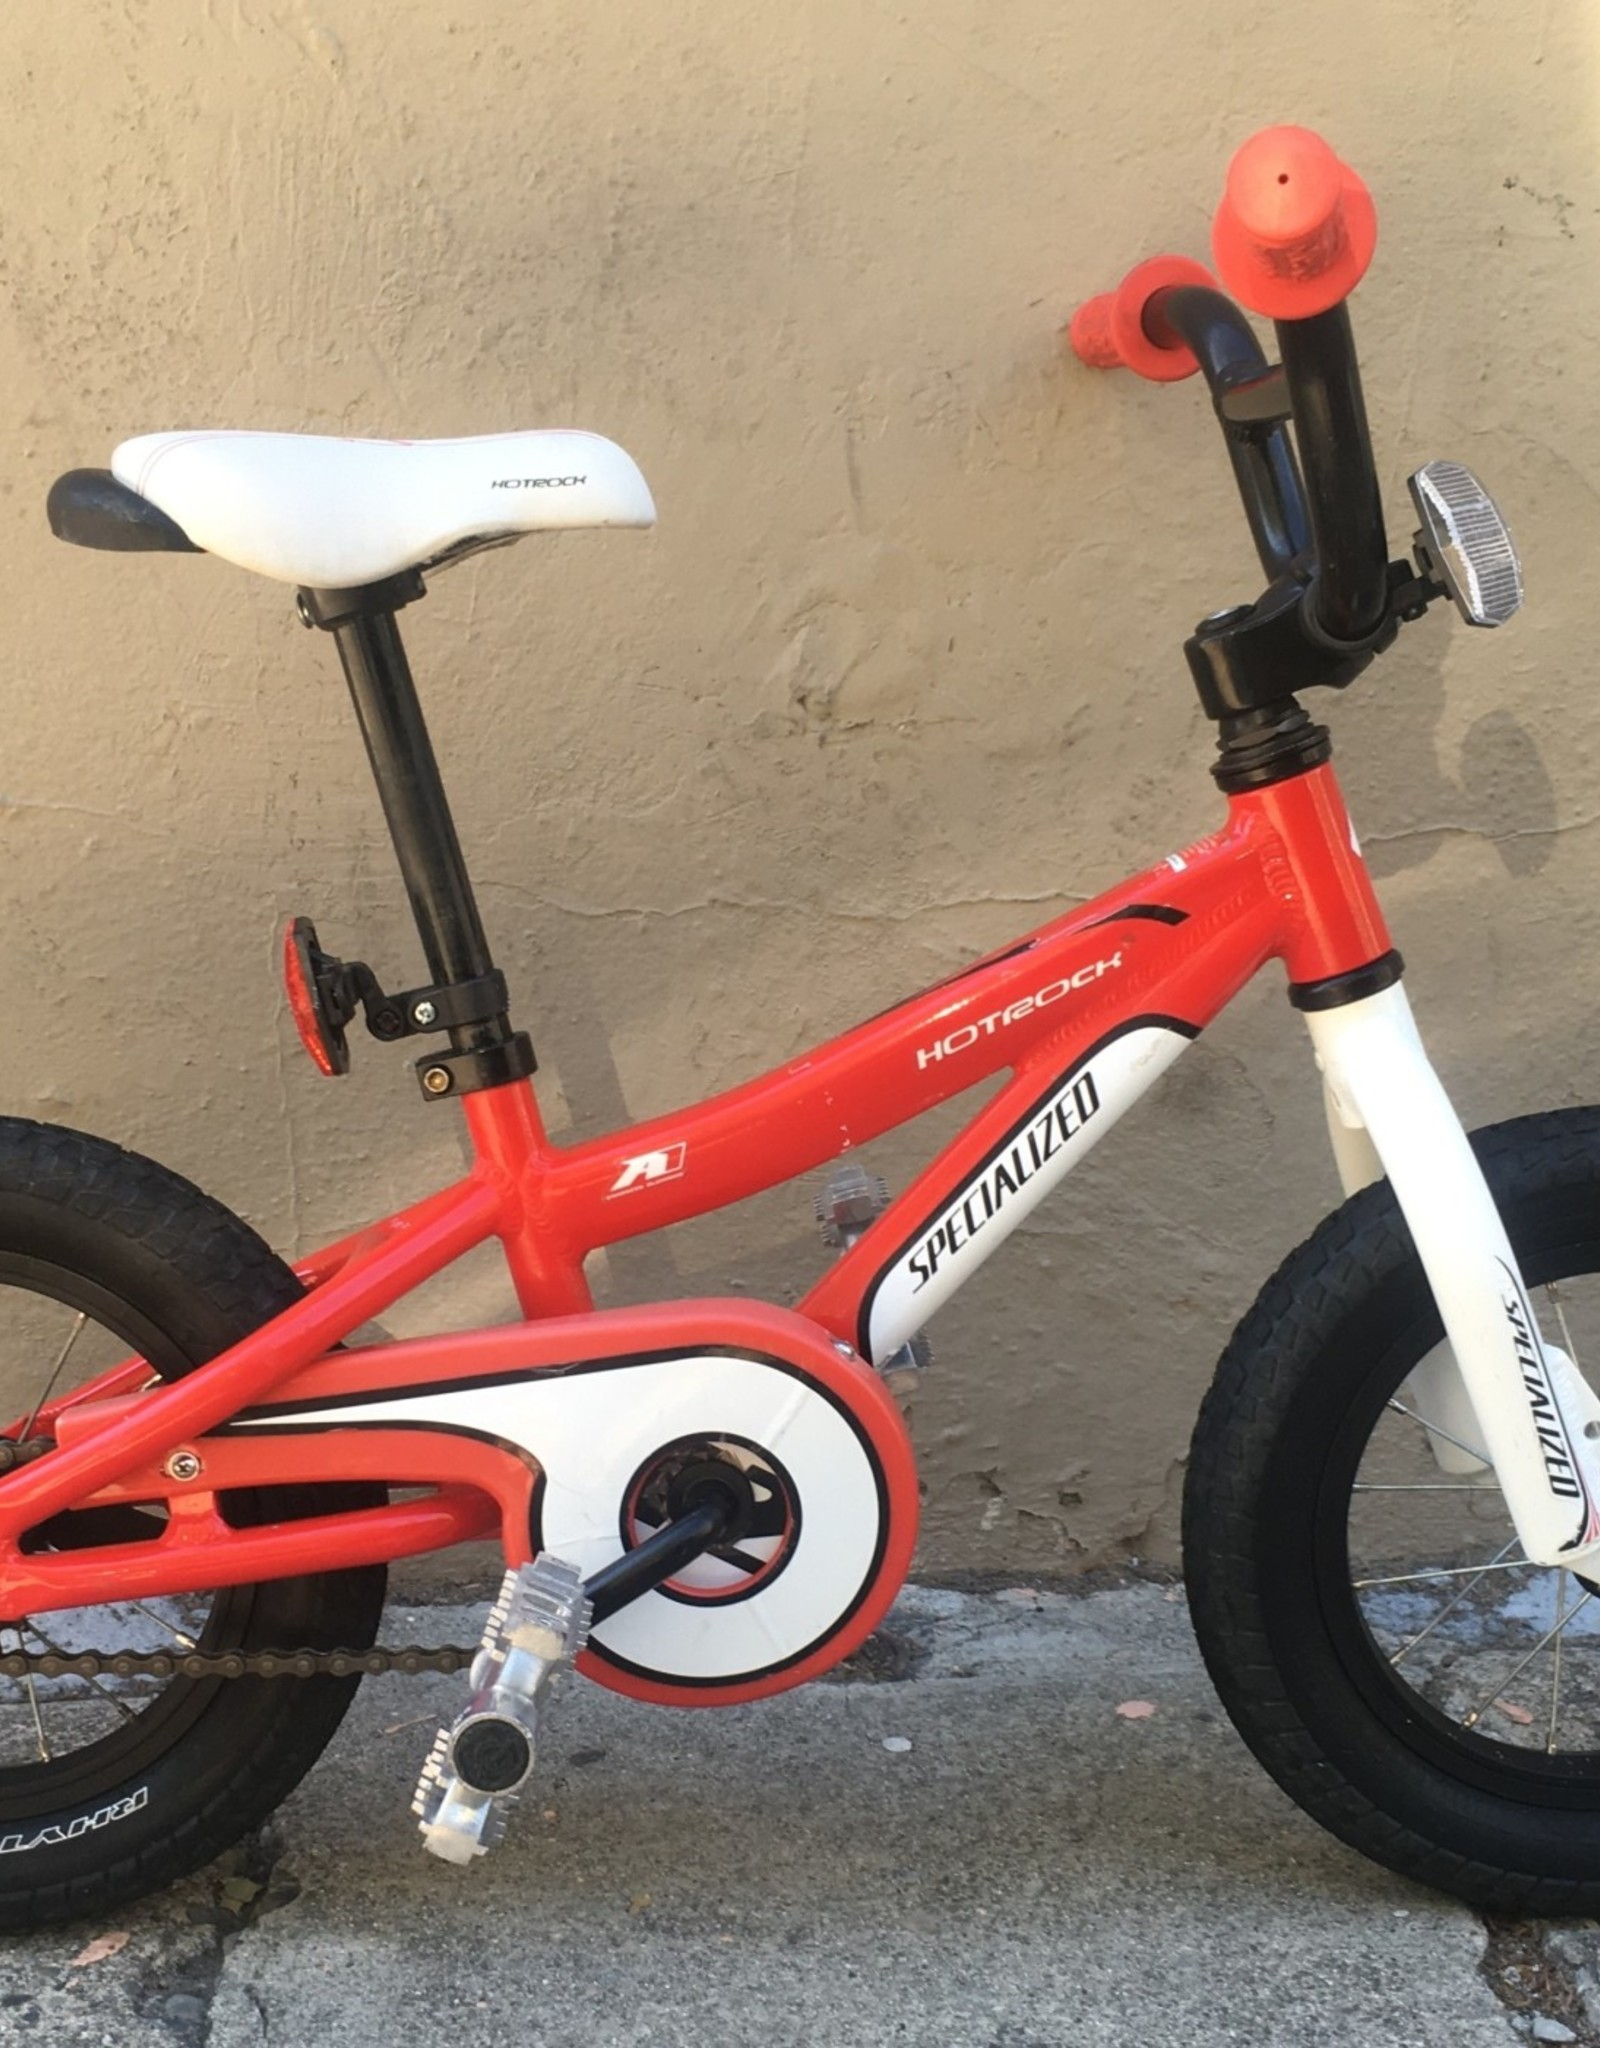 Specialized Specialized Hotrock Youth, Red, 12 inch